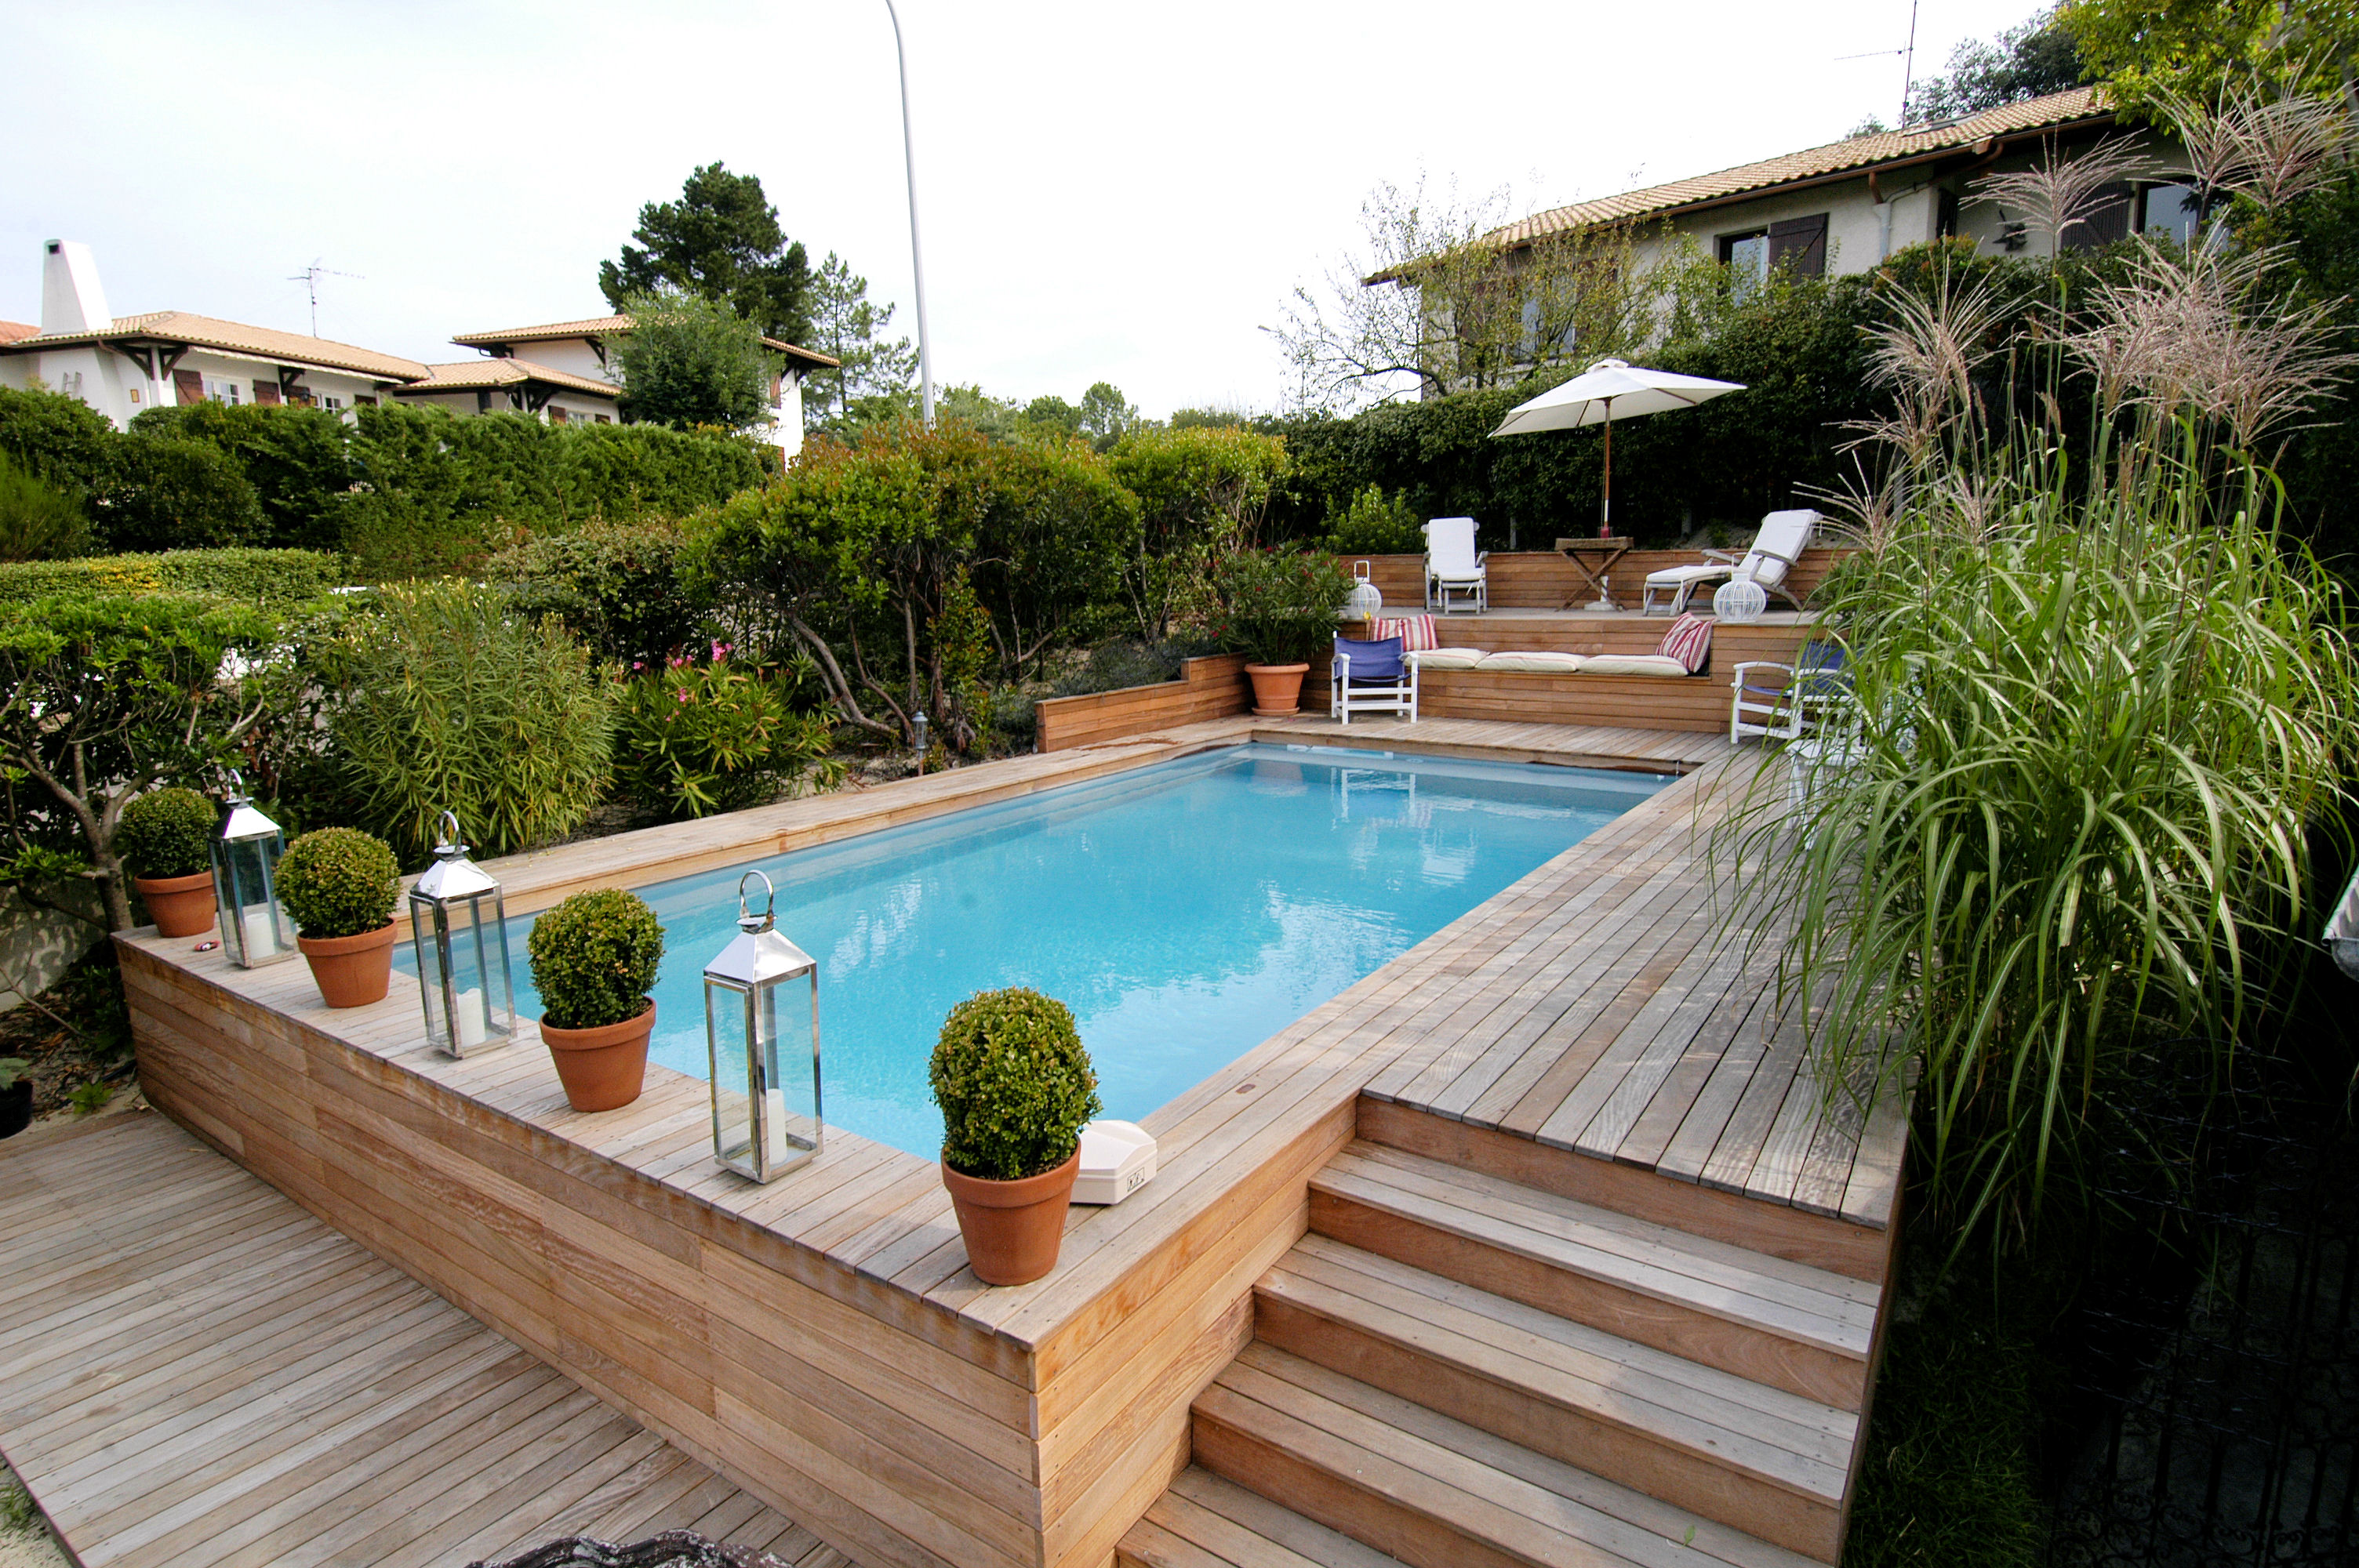 Piscine bois semi enterr e 3m for Piscine semi enterree bois